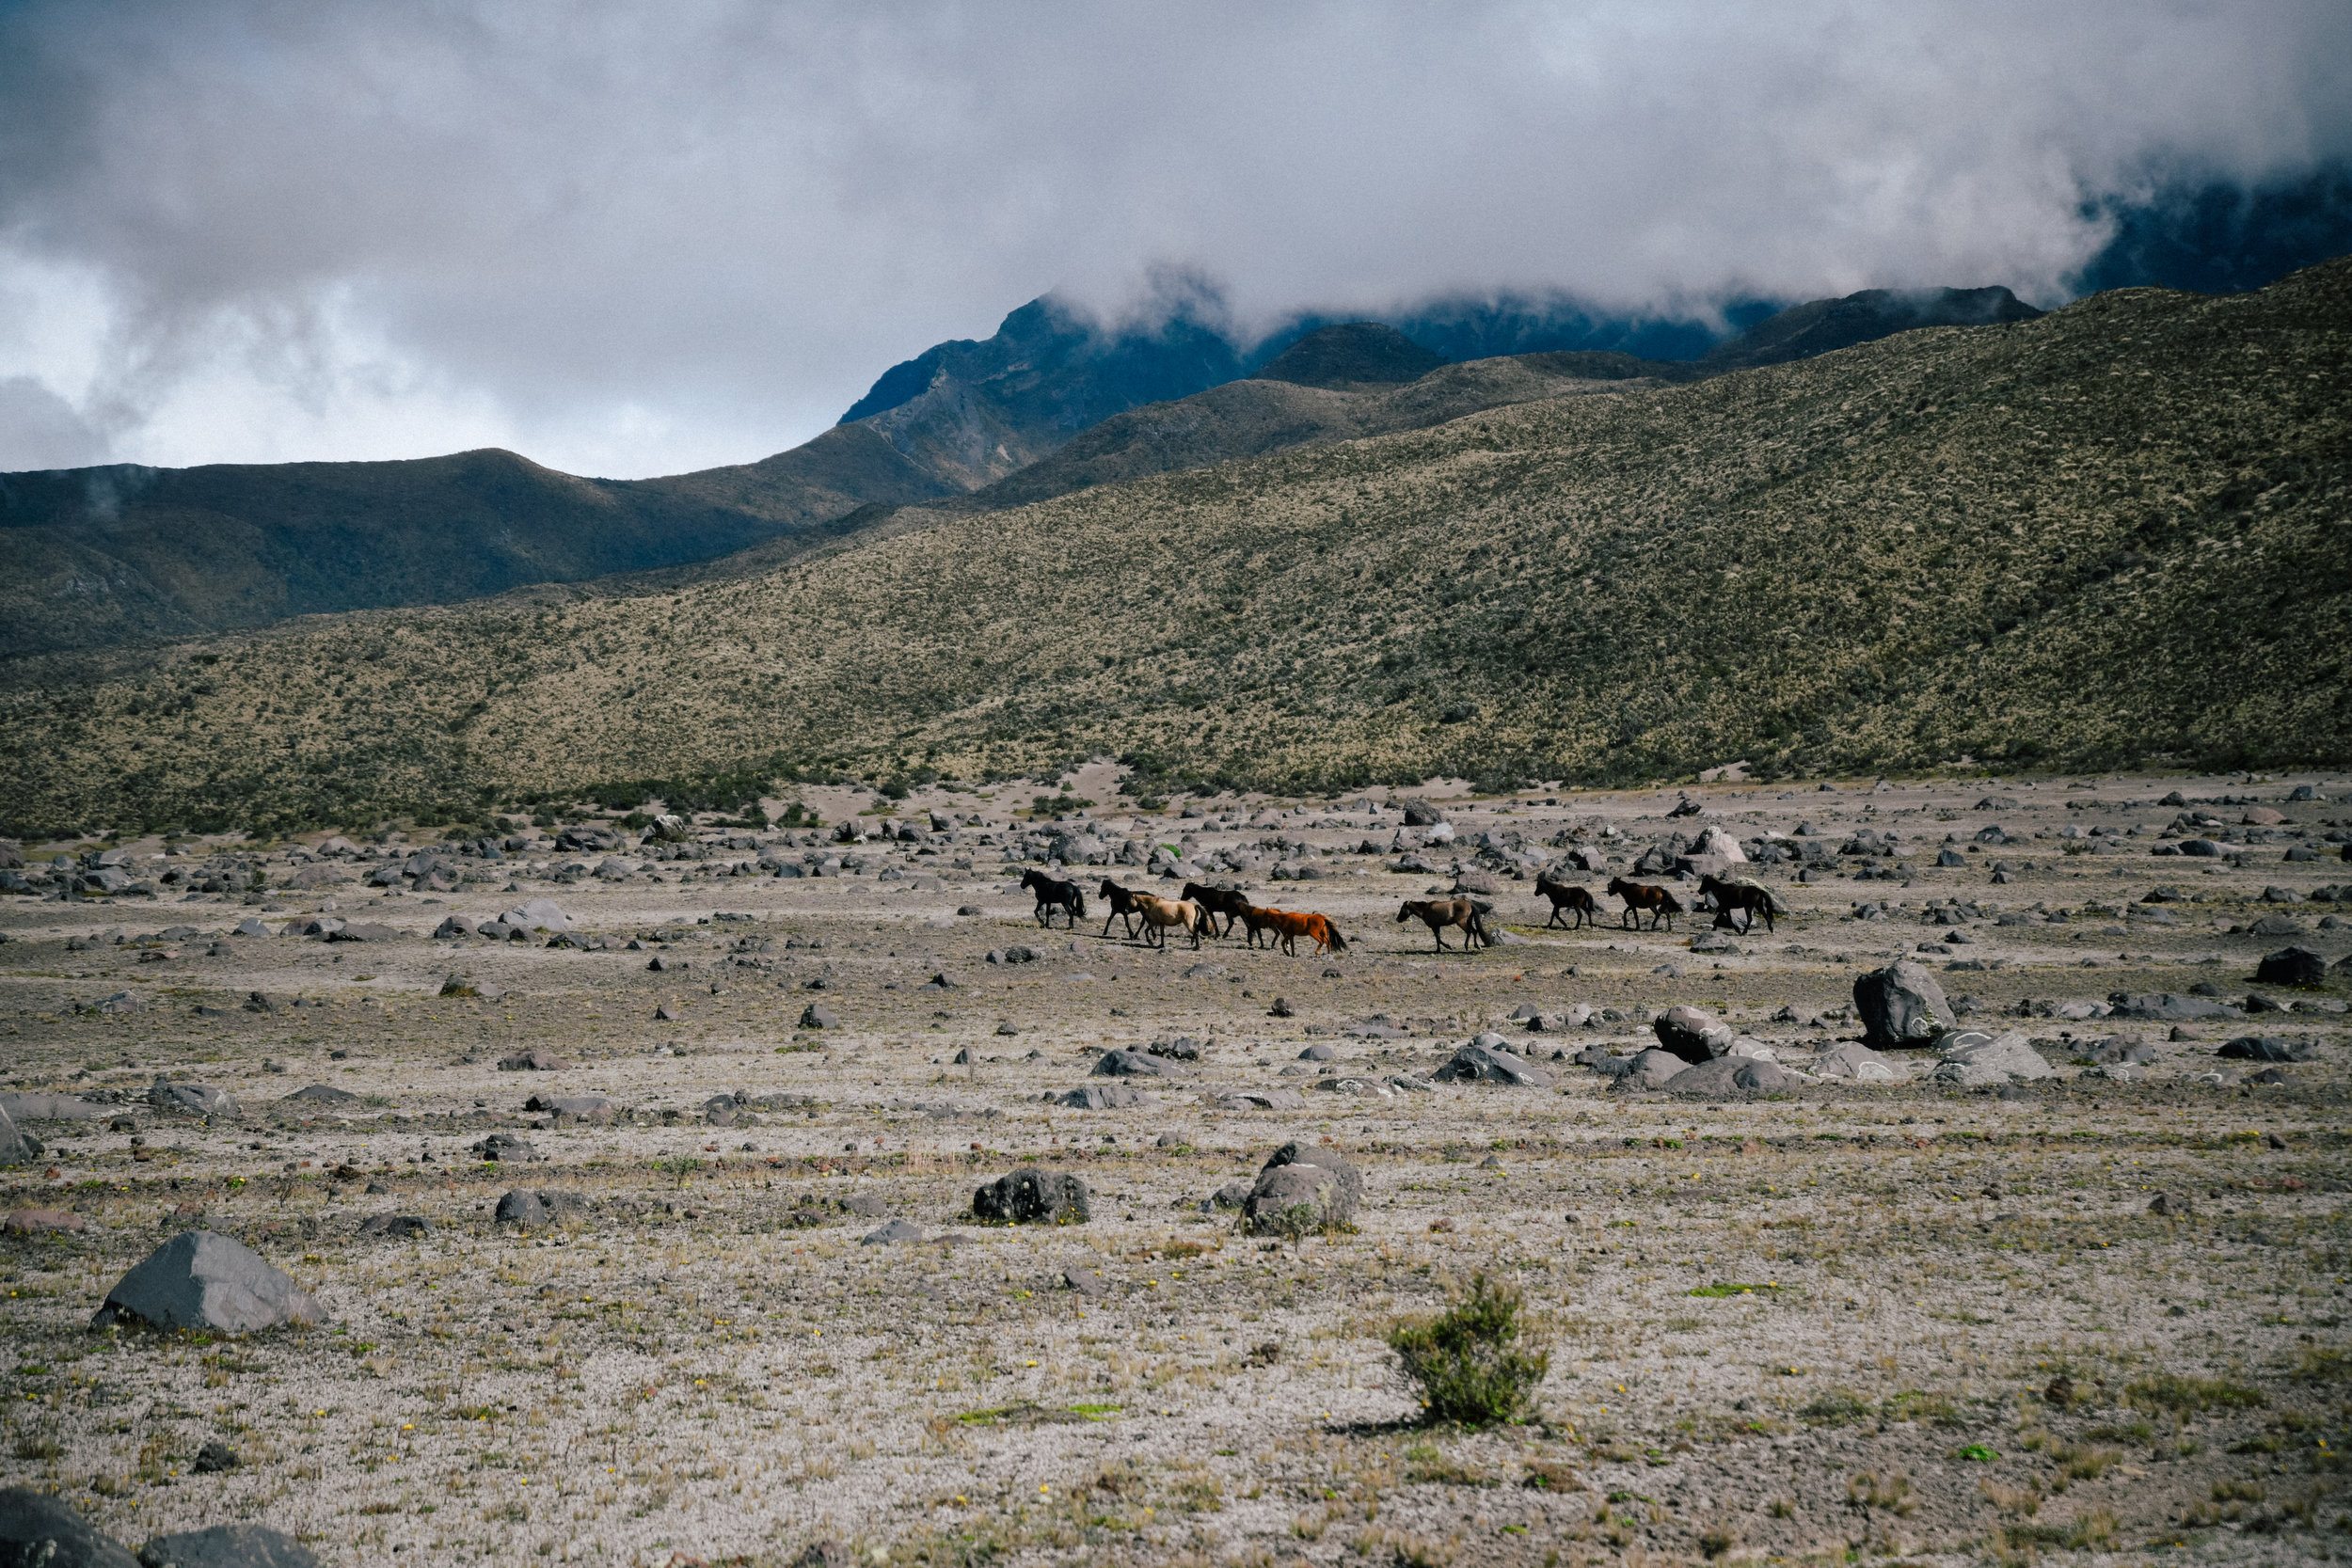 a clearer view of some wild horses